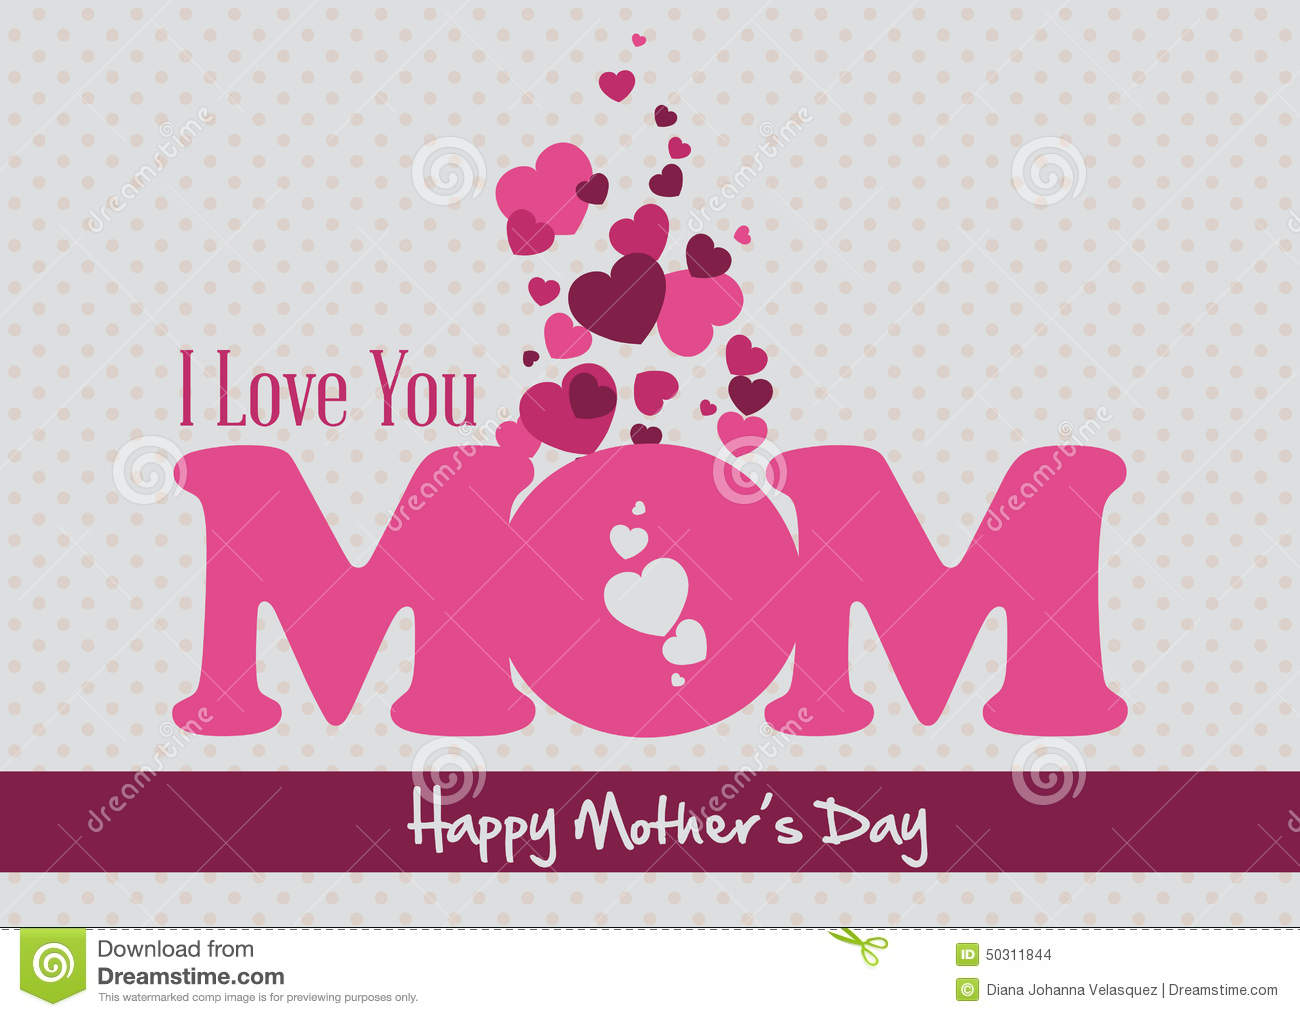 Mothers Day Stock Illustration - Image: 50311844